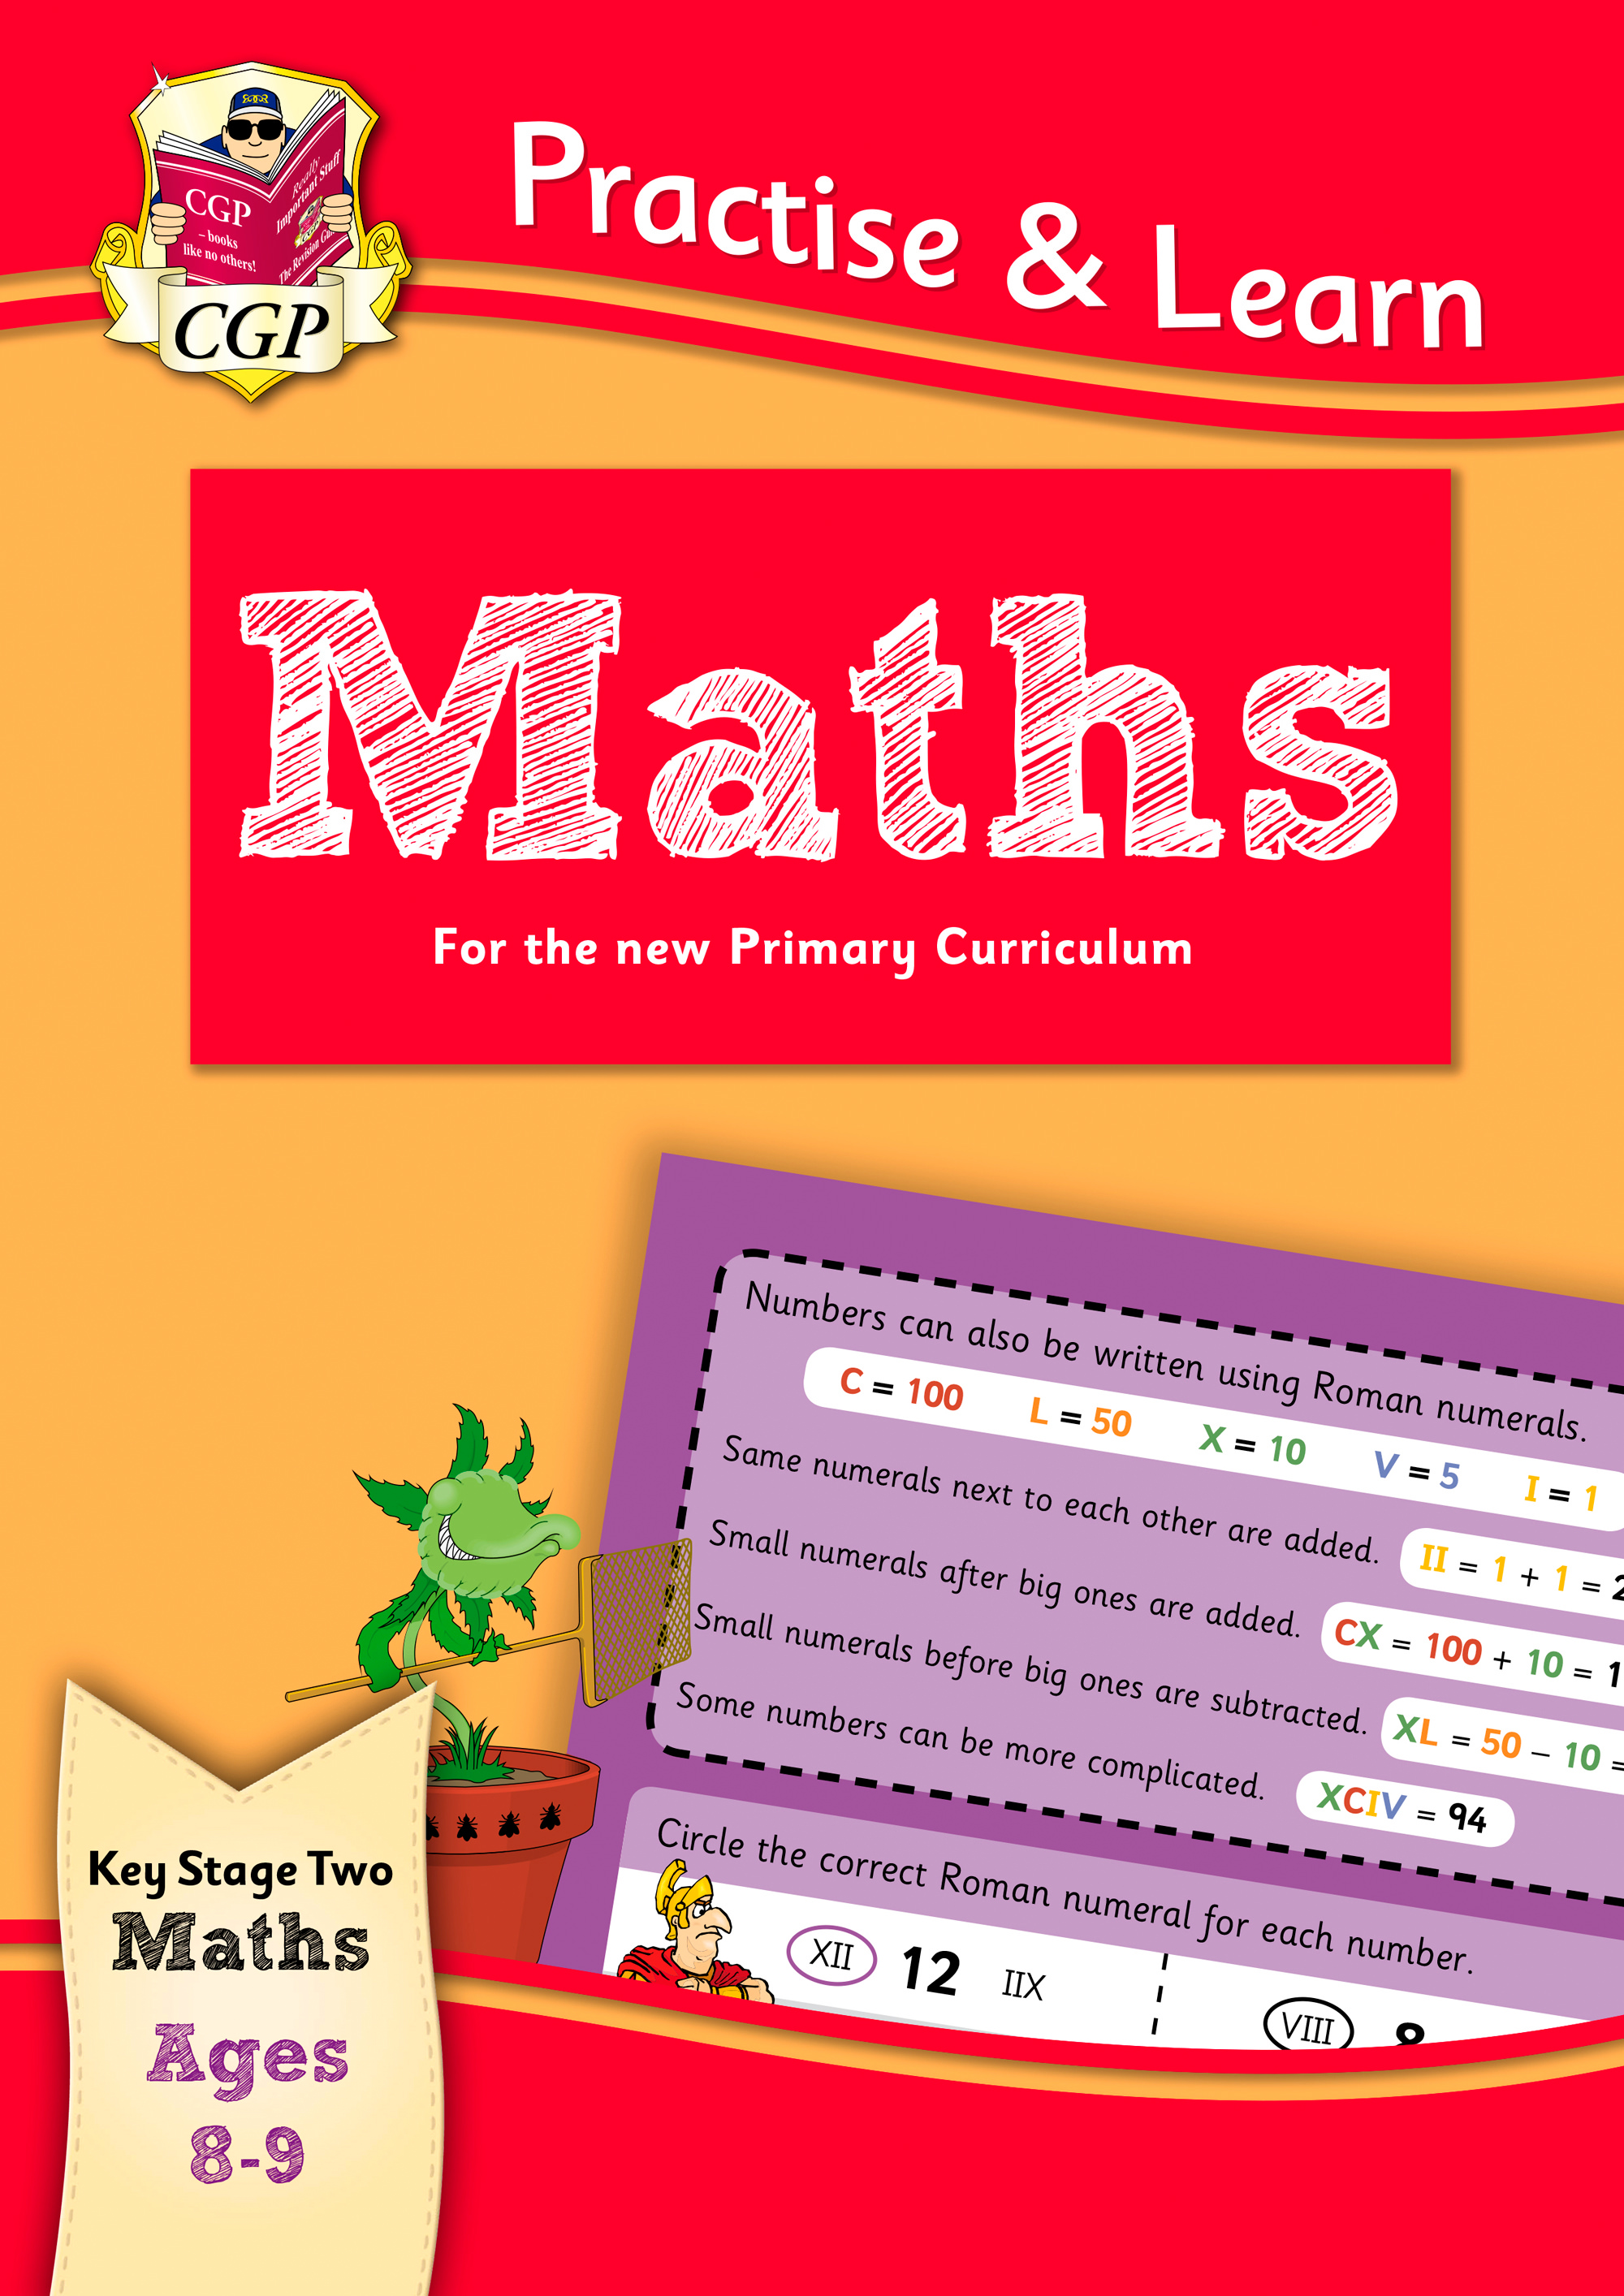 MP4Q22DK - New Curriculum Practise & Learn: Maths for Ages 8-9